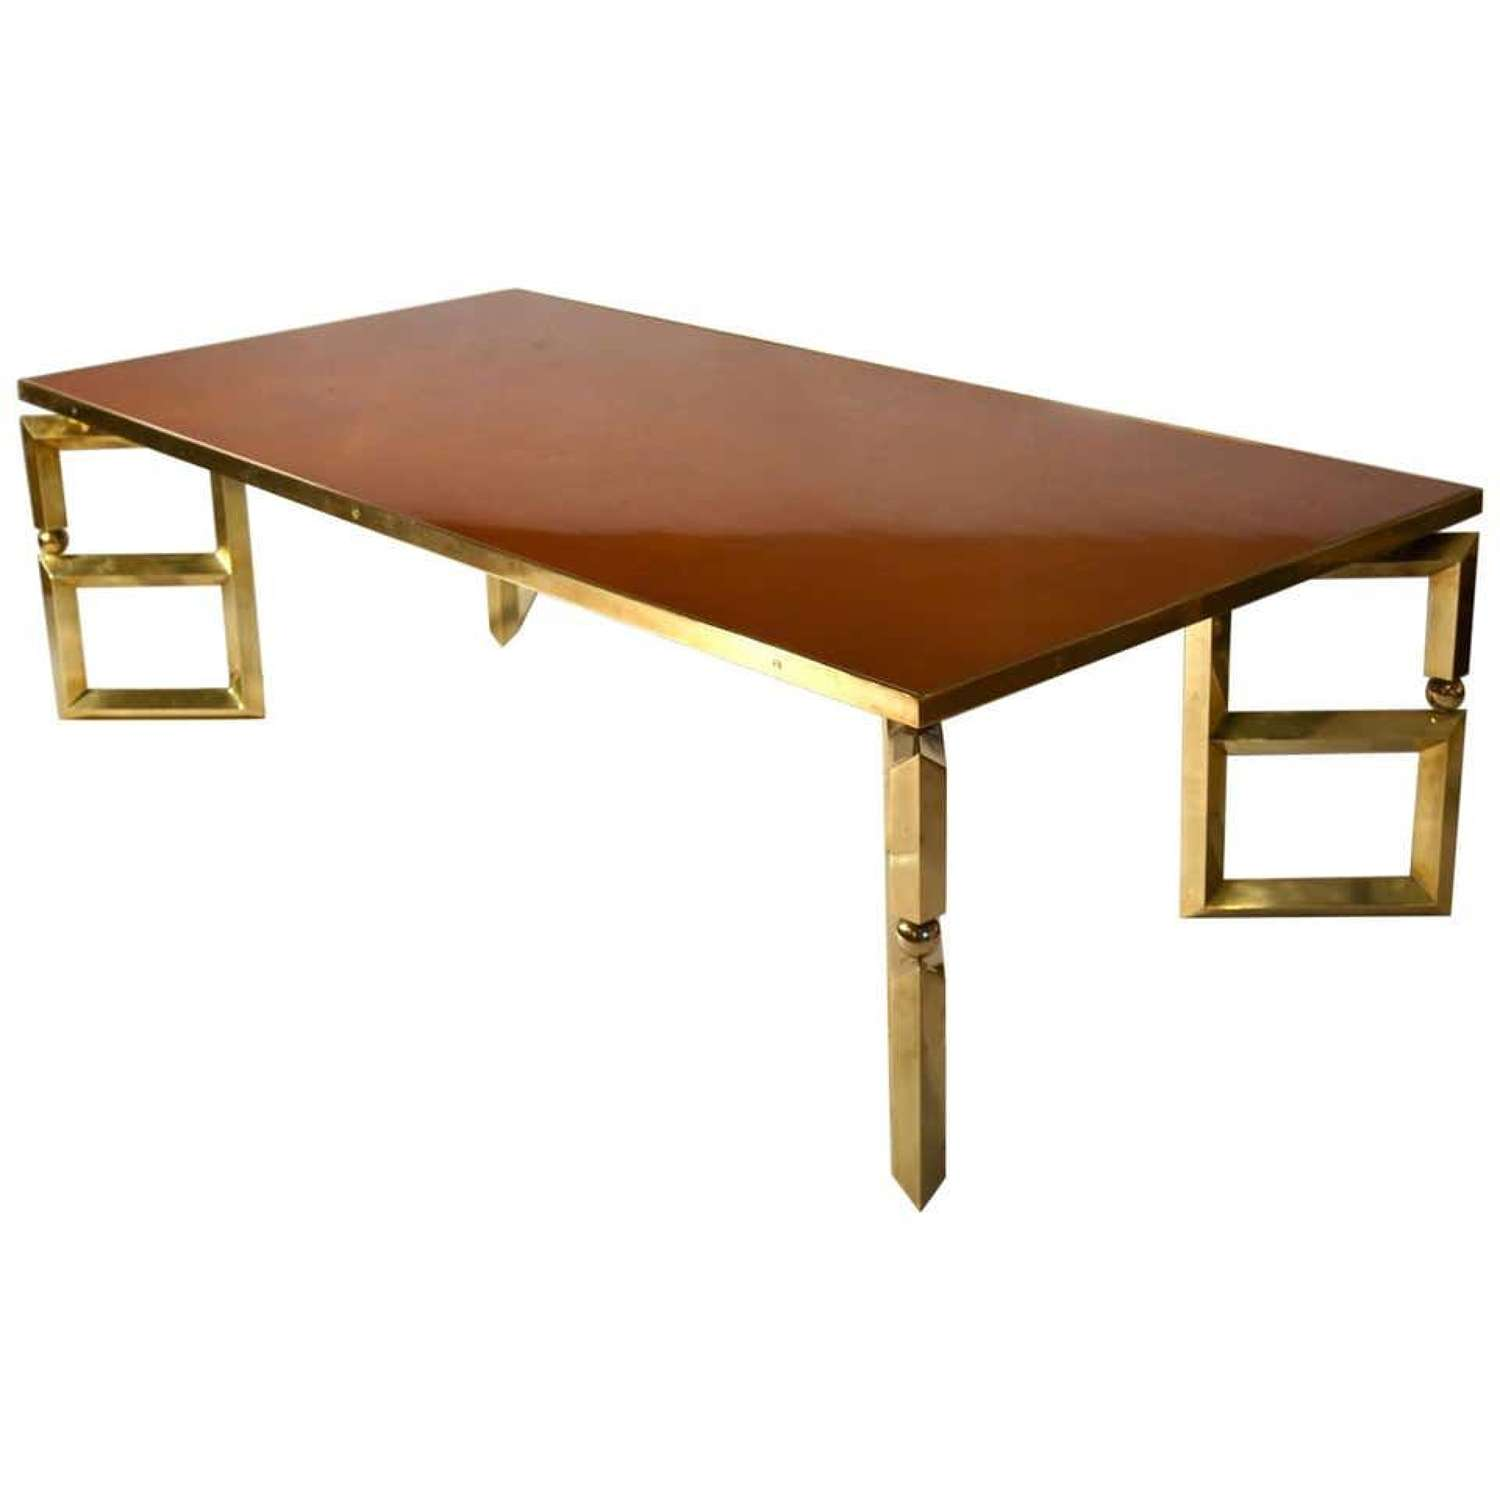 Brass and Burnt Orange Coffee Table by Maison Jansen